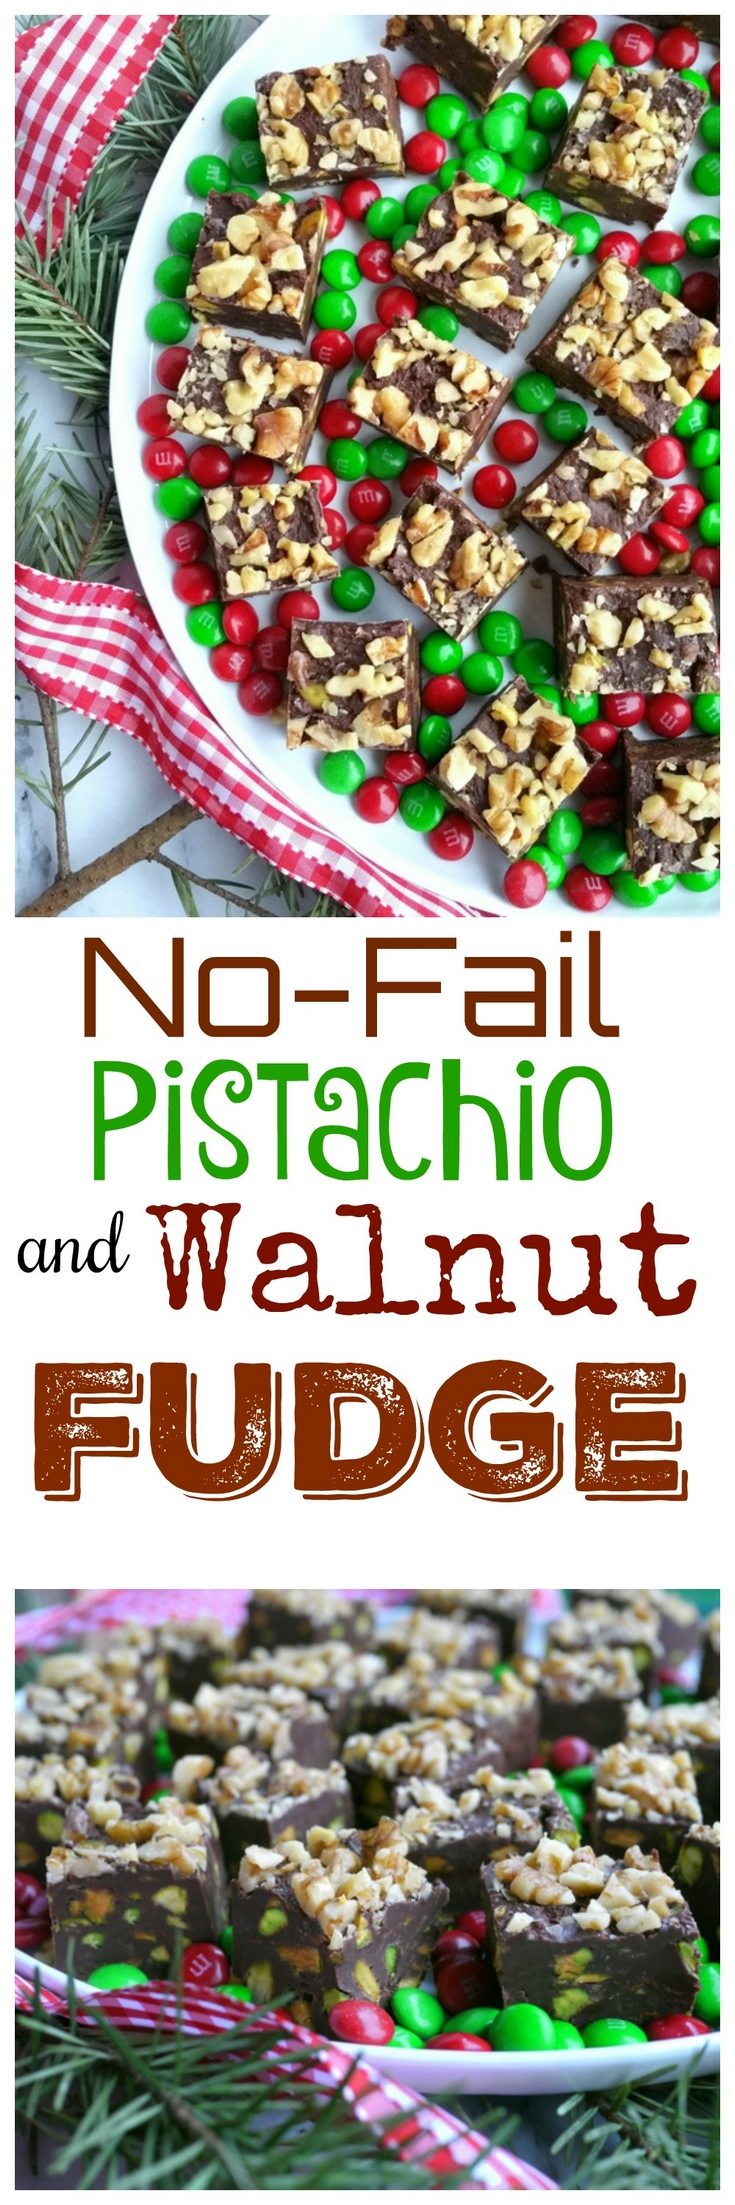 VIDEO + RECIPE: Meticulous cooking and constant beating is not necessary with this No-Fail Pistachio and Walnut Fudge. The recipe is foolproof and makes perfect fudge every, single time. Perfect for giving too, from NoblePig.com. #noblepig #fudge #christmas  via @cmpollak1